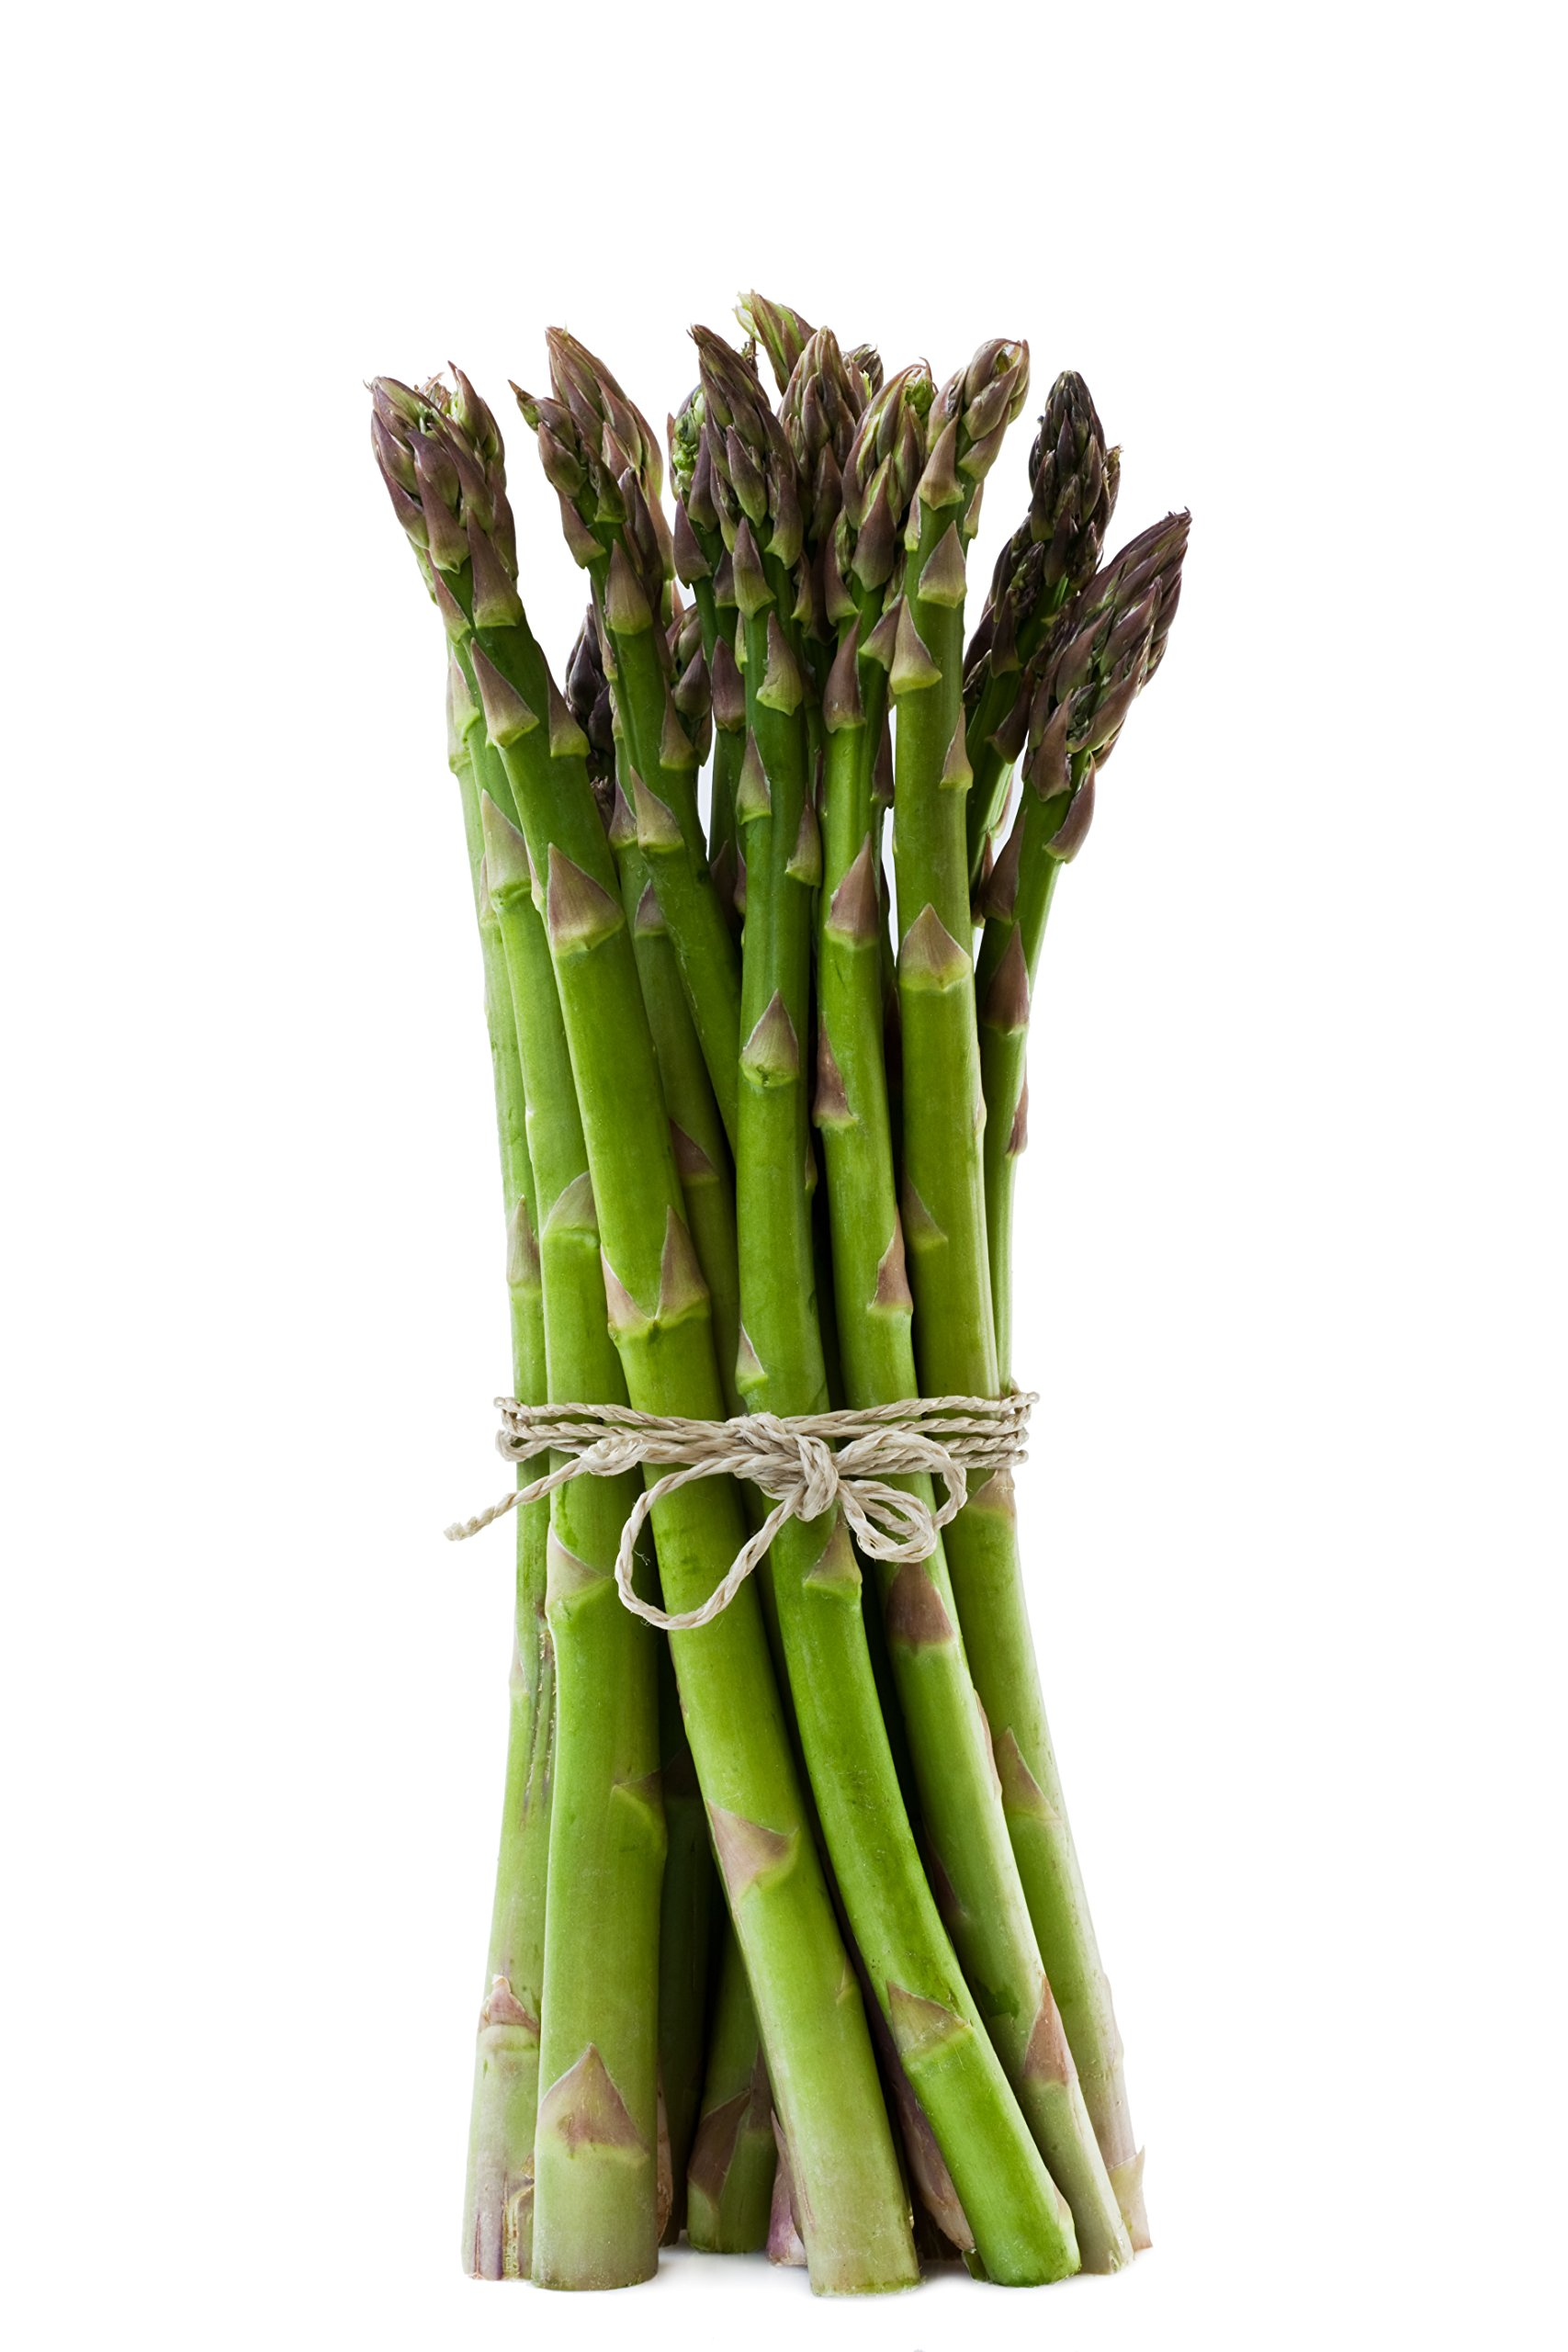 Millennium Asparagus Large Crowns - All Male - Non-GMO - Top Producing Variety- Northwest Grown (50 Crowns)